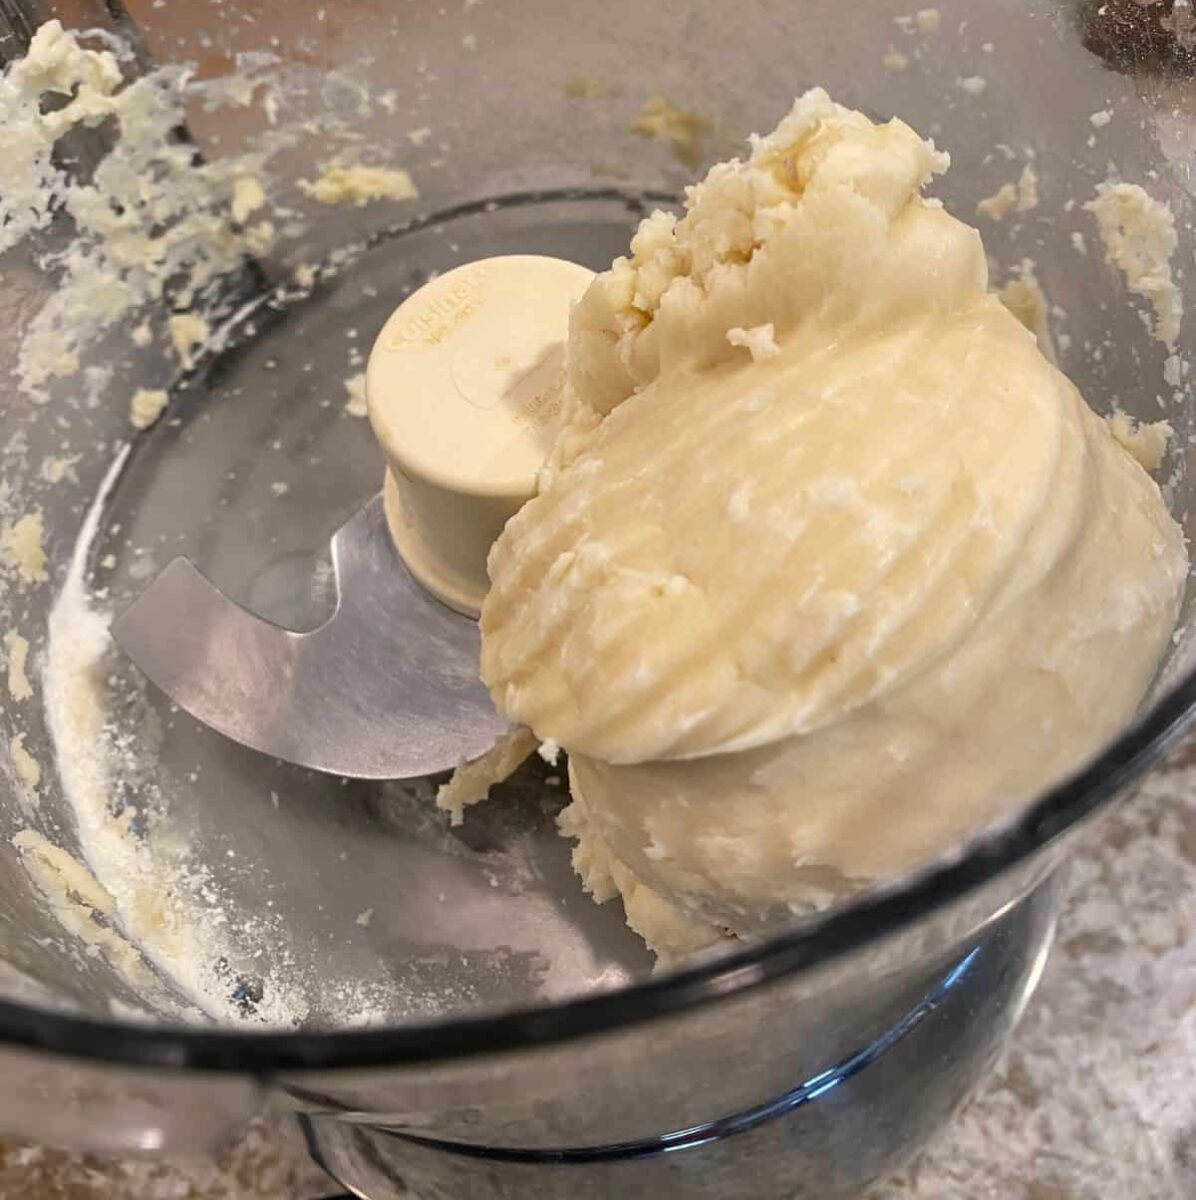 Small mound of unbaked shortbread dough in a food processor.